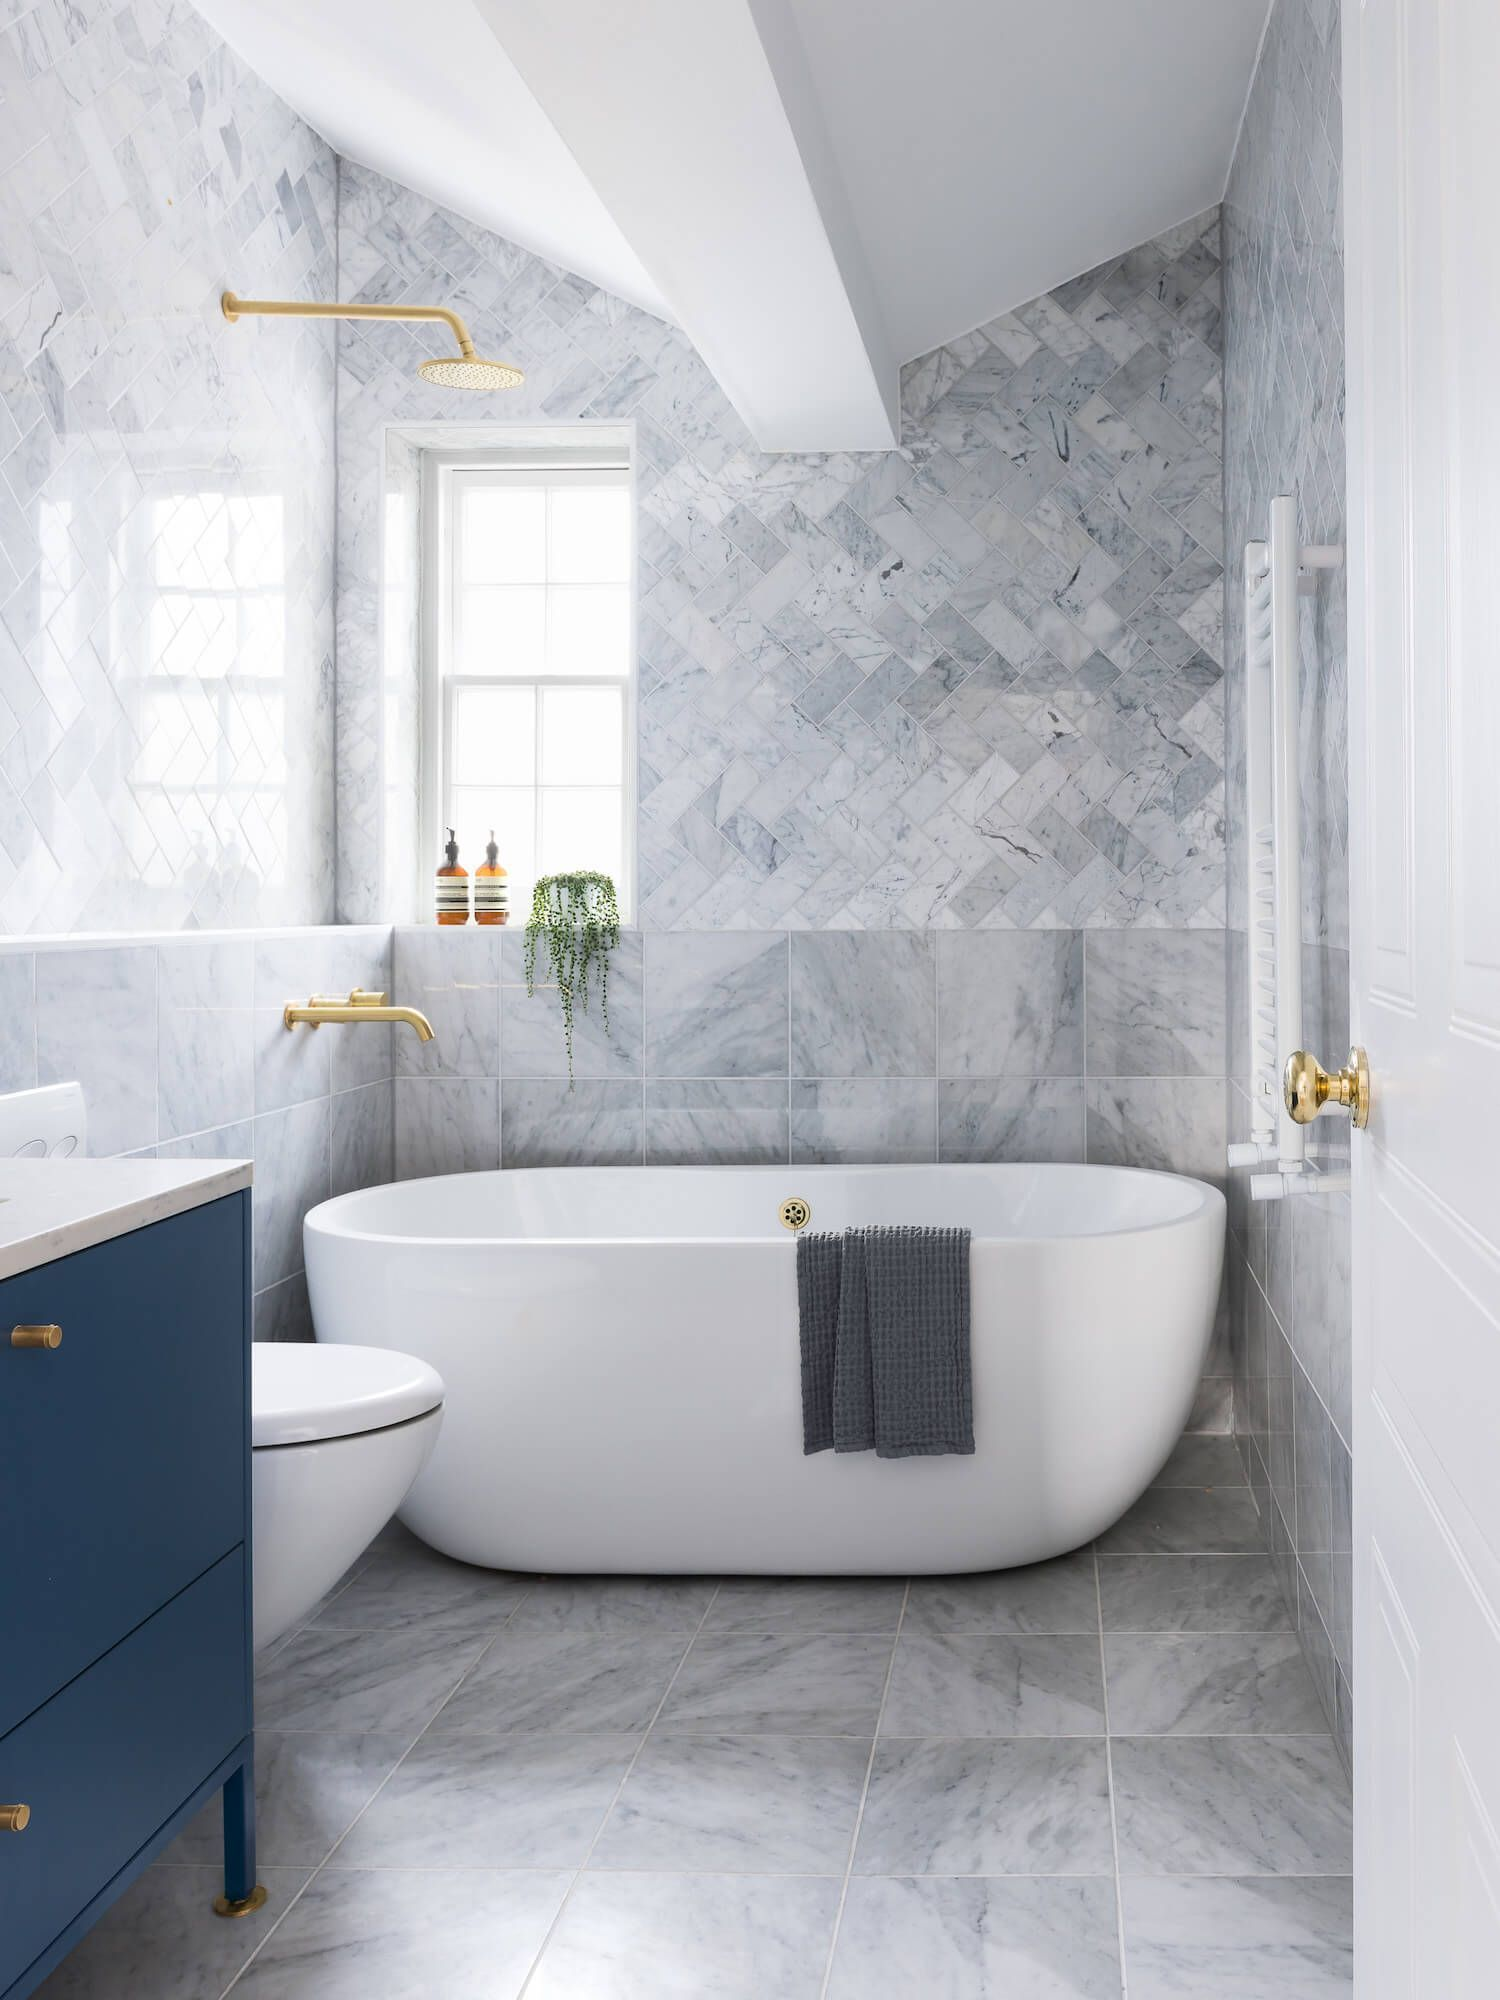 The Powder Room Is Narrow But It Feels More Spacious Because Of The Rows Of Mirrors Luxury Bathroom Master Baths Top Bathroom Design Bathroom Interior Design